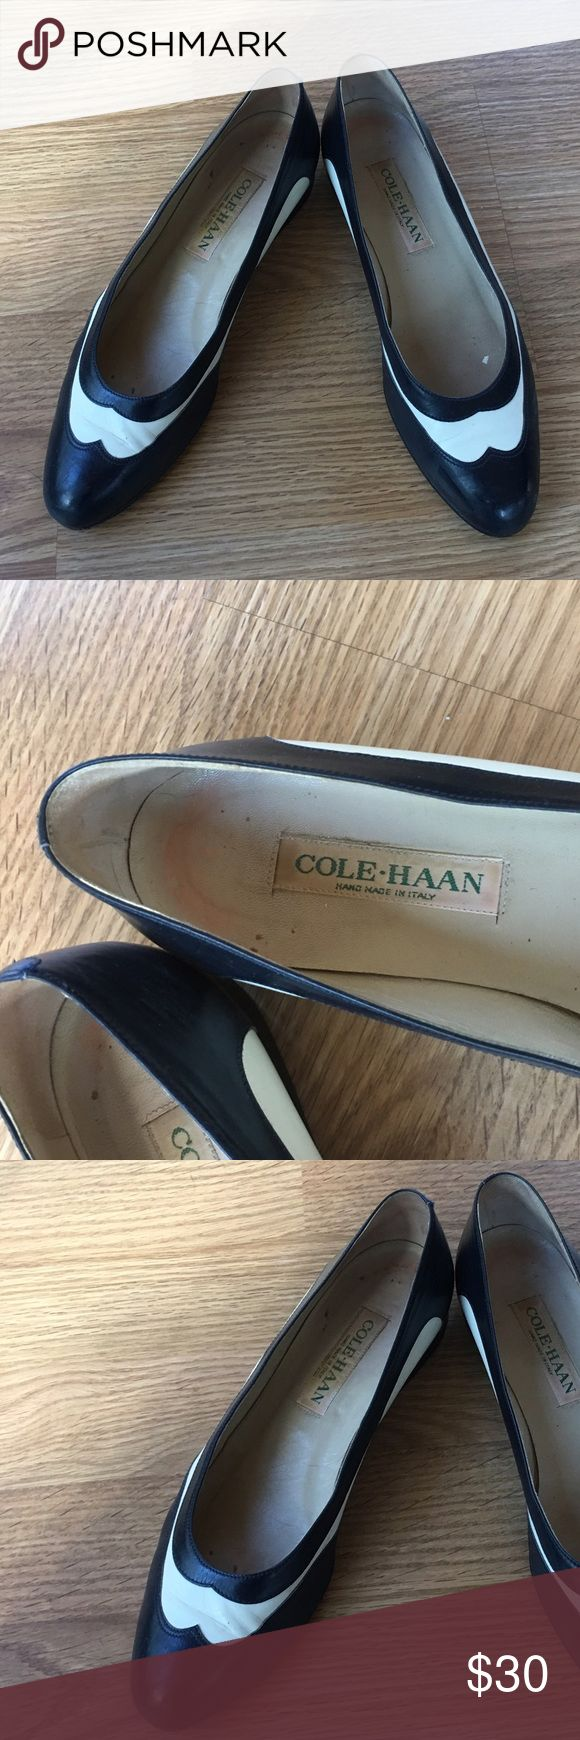 Cole-Haan Spectator Shoe Cole-Haan Navy and white spectator Shoe.  Fairly worn.. Cole-Haan Shoes Flats & Loafers